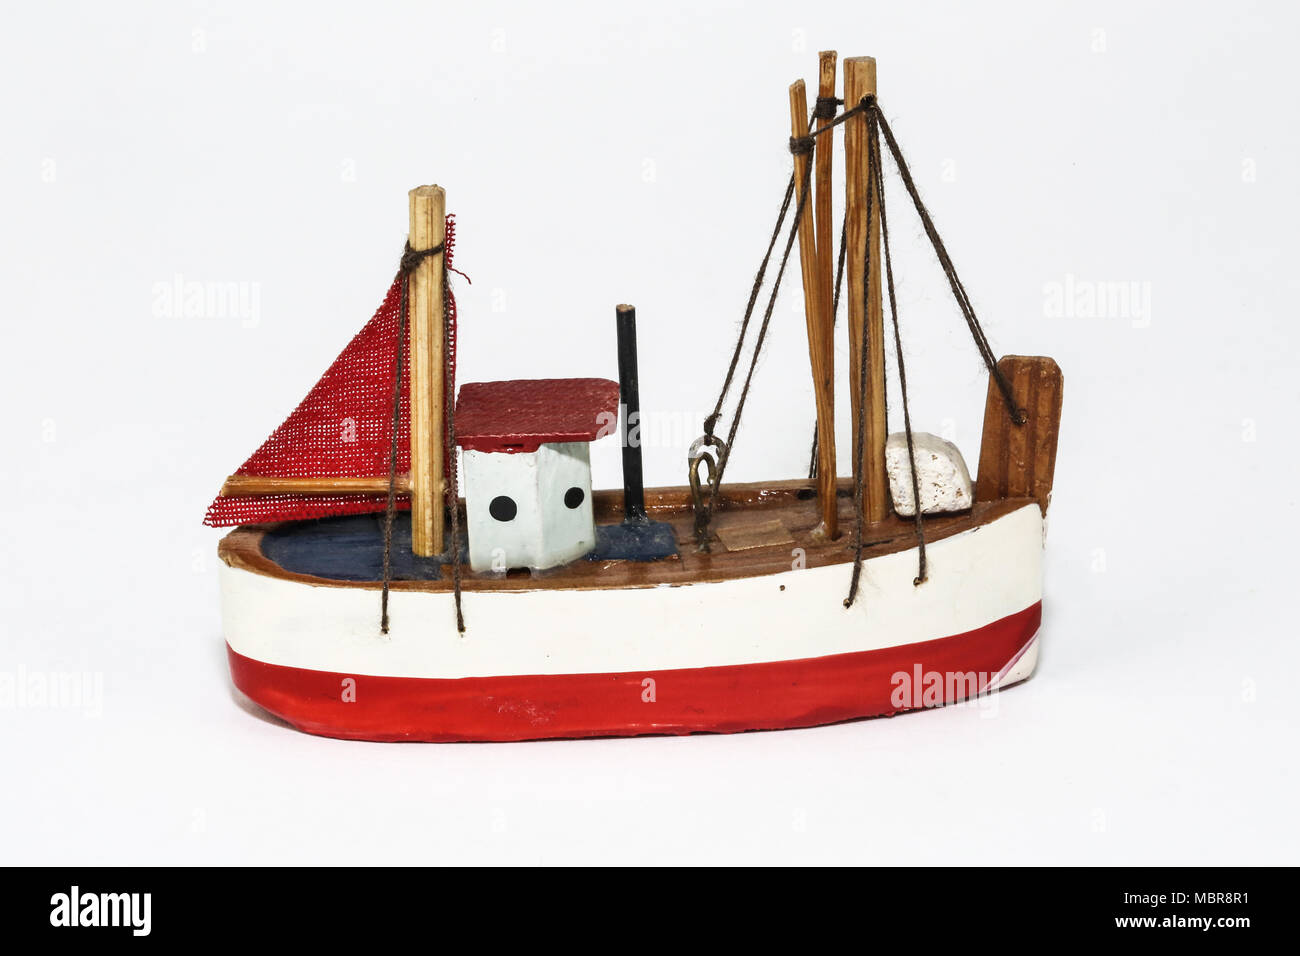 A model fishing boat made of wood, string and a small piece of cloth for the sail. It has been handmade in a traditional design. - Stock Image